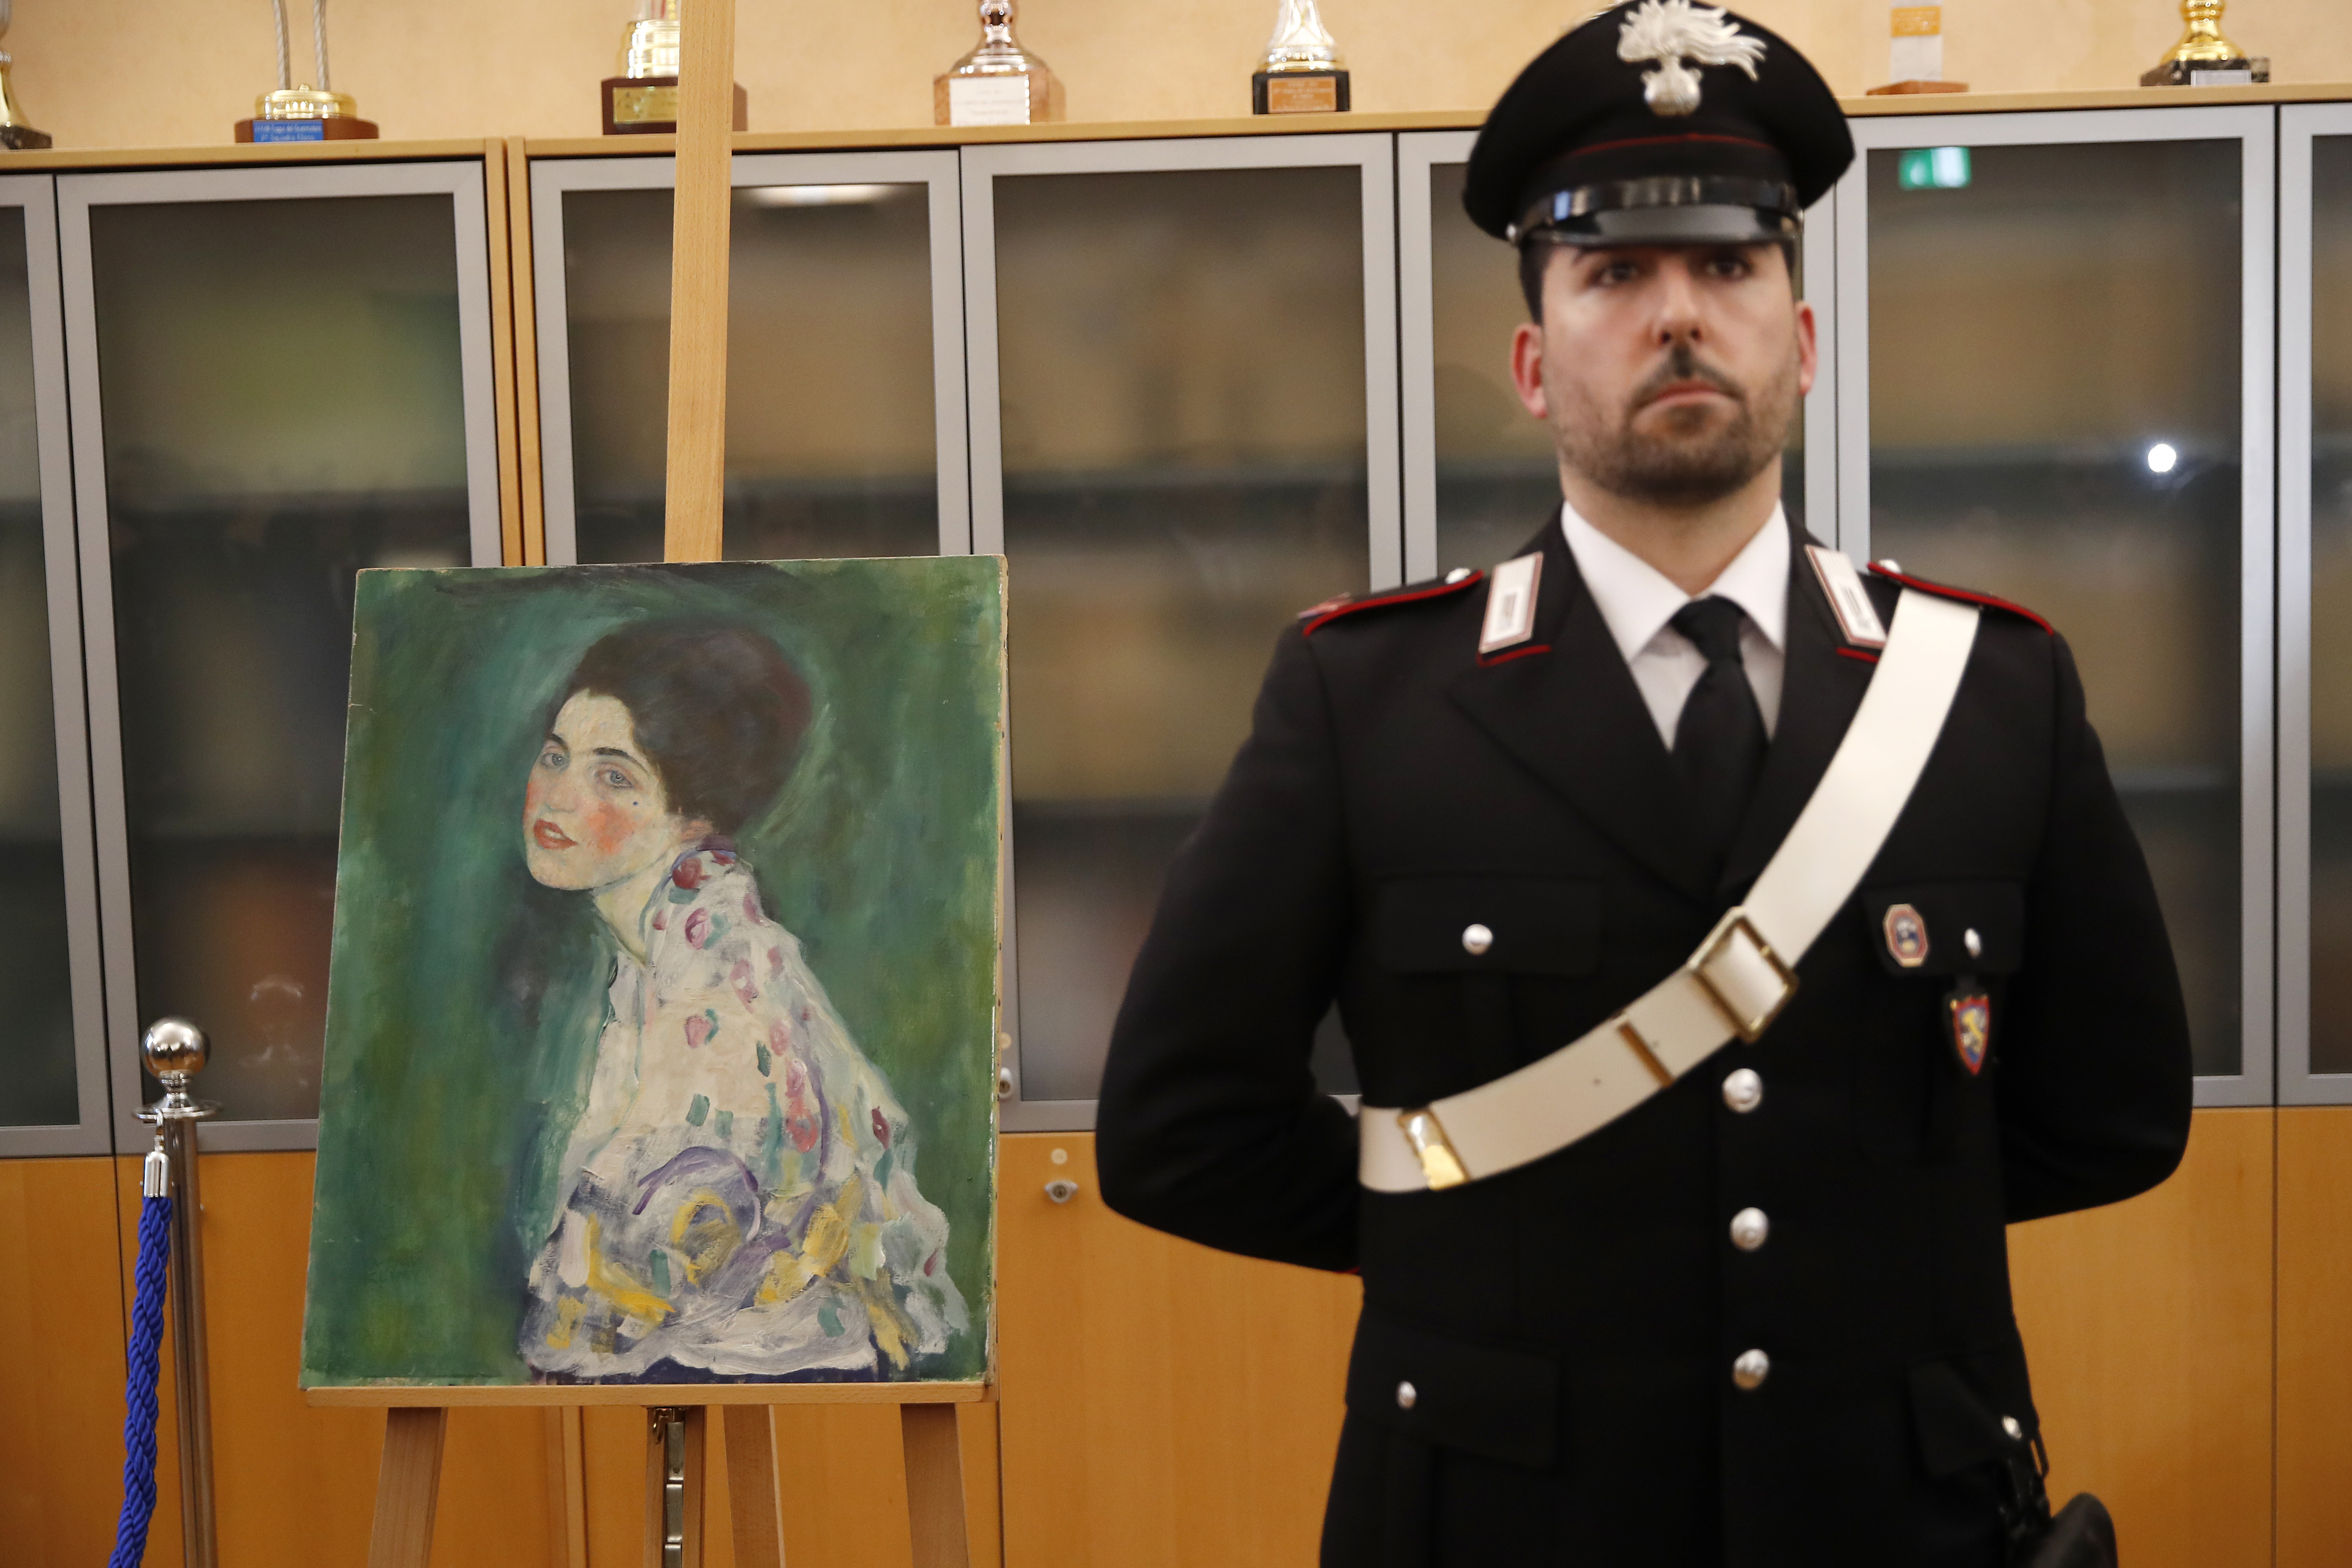 An Italian Carabiniere, paramilitary police officer, stands near a painting which was found last December near an art gallery and believed to be the missing Gustav Klimt's painting 'Portrait of a Lady' during a press conference in Piacenza, Italy, Friday, Jan. 17, 2020.